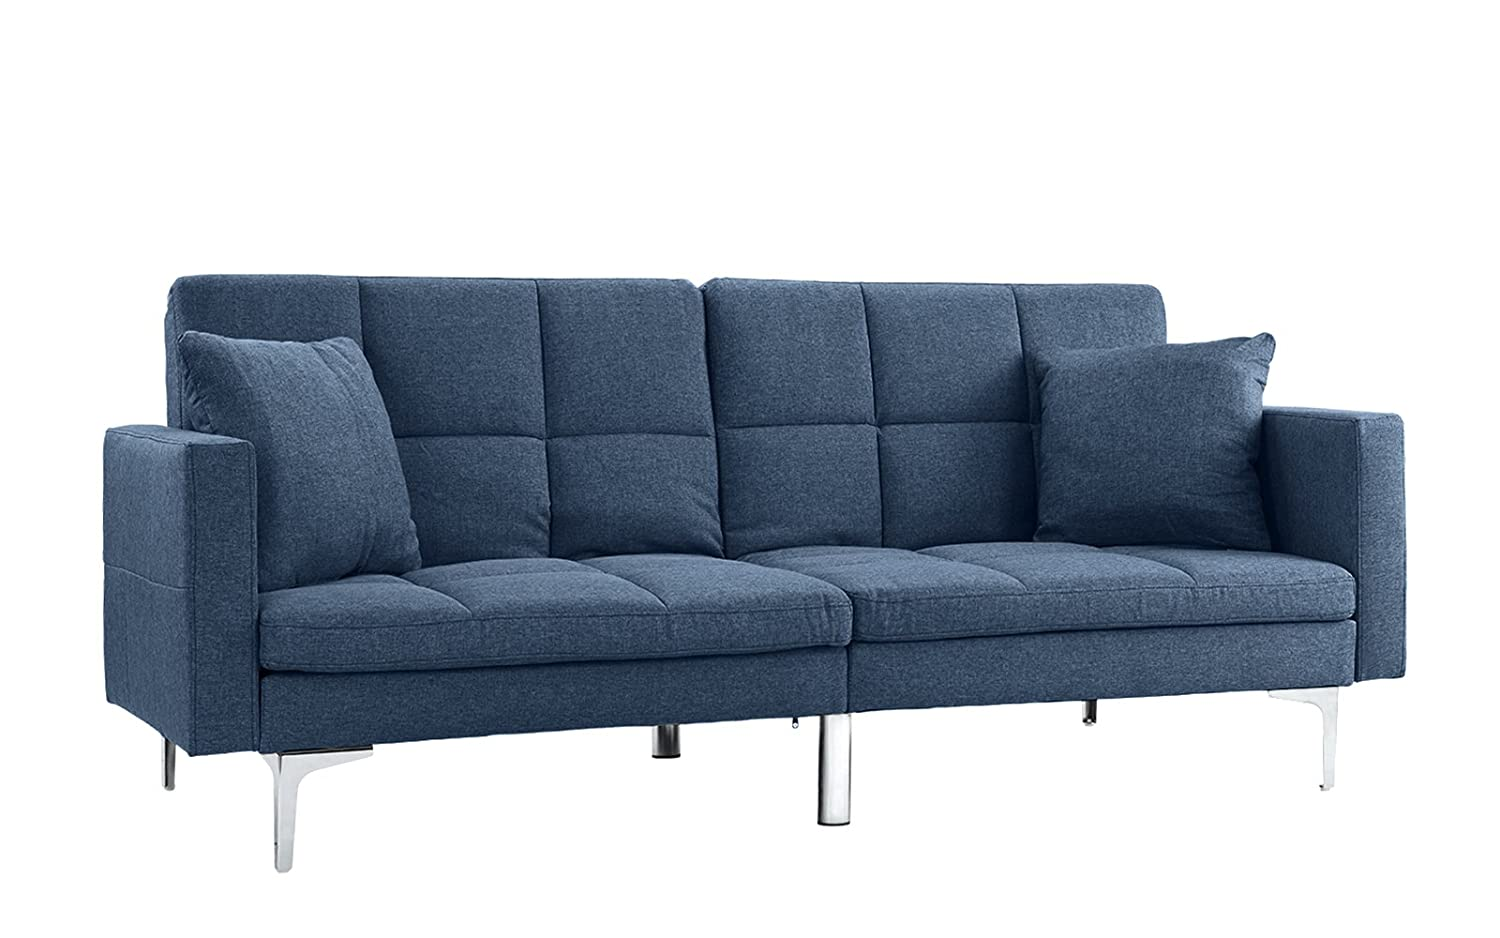 Amazon com divano roma furniture modern plush tufted linen split back living room futon sofa for small space blue kitchen dining